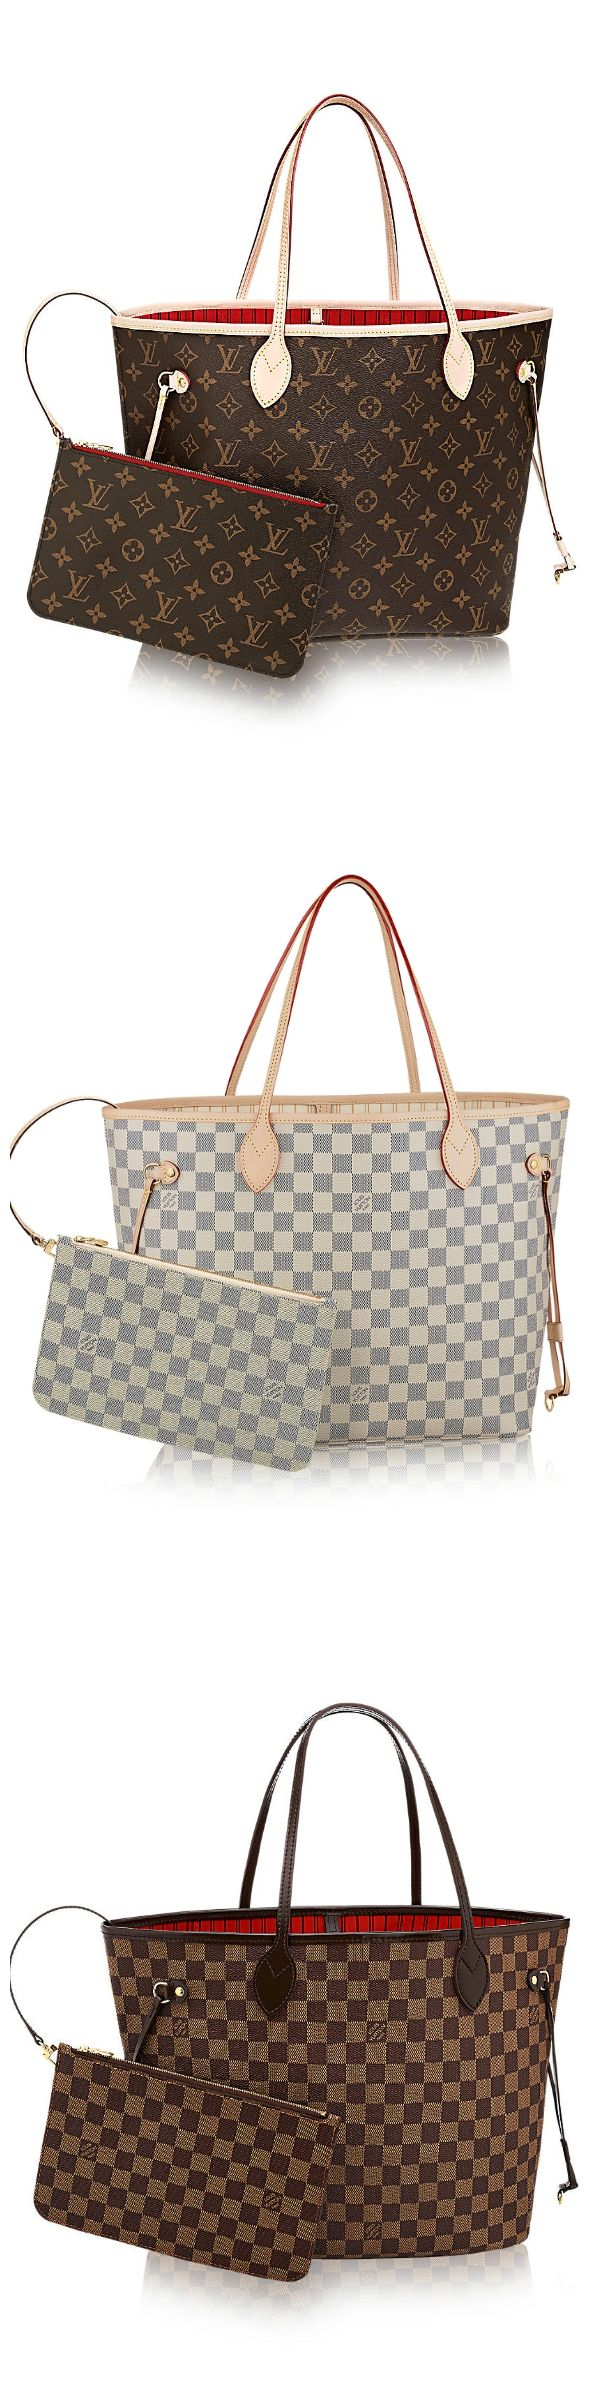 Discover: Thousands upon thousands gorgeous, authentic pre-owned Louis Vuitton pieces. Score a treasure from another woman's closet for up to 90% off retail prices. You won't be sorry.